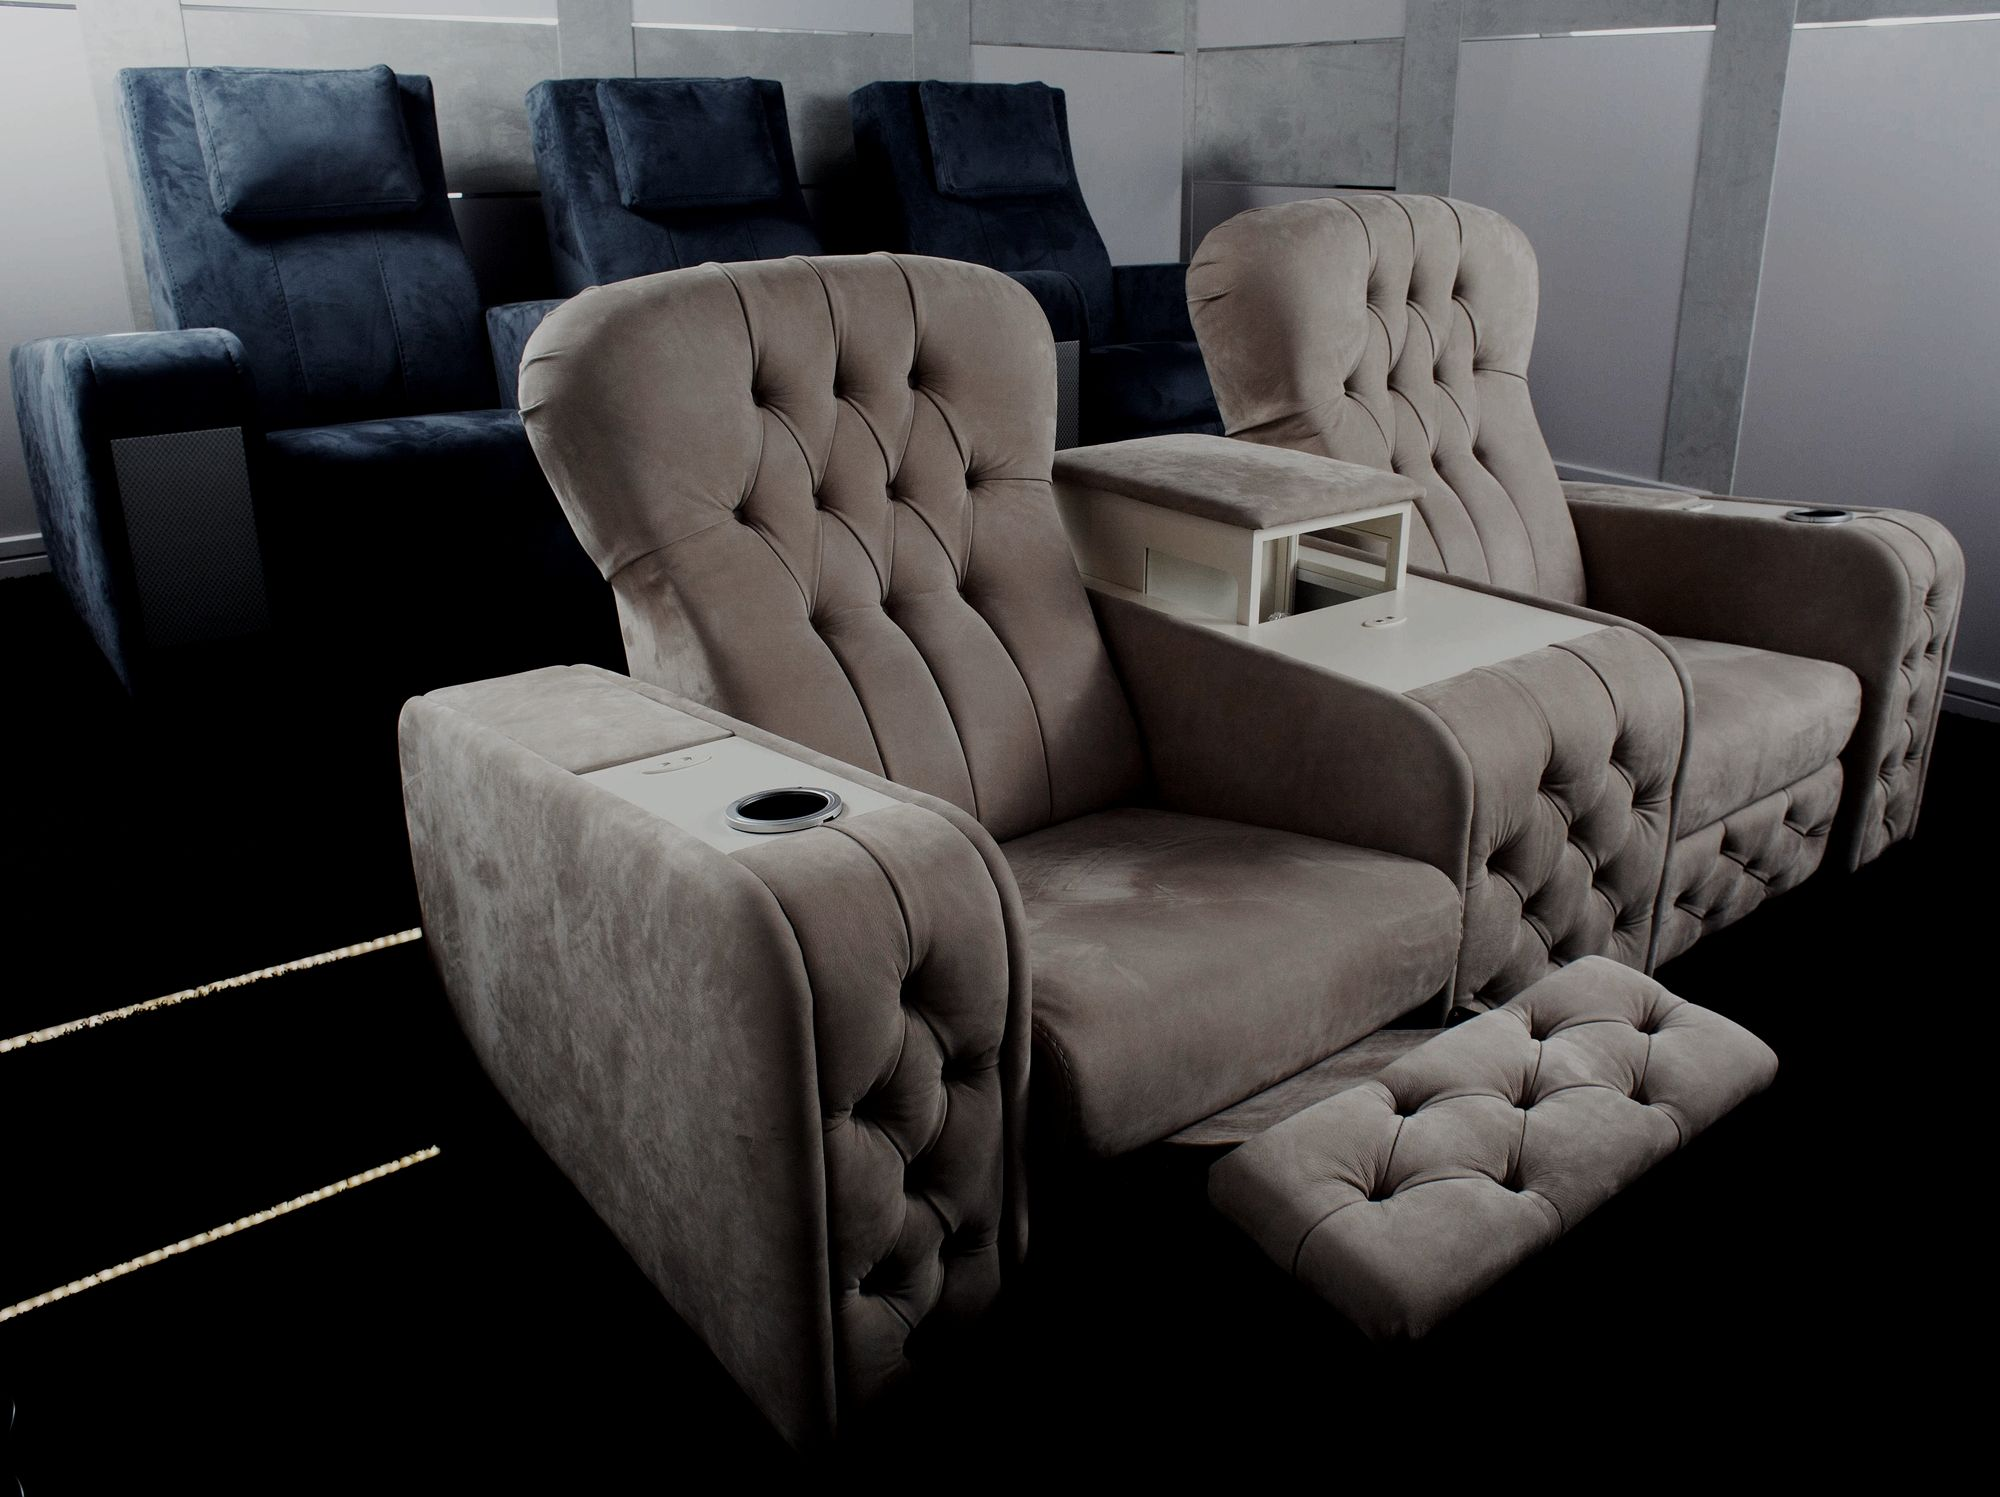 Comfort Theater Chairs Recliner Chair Room Furnishing